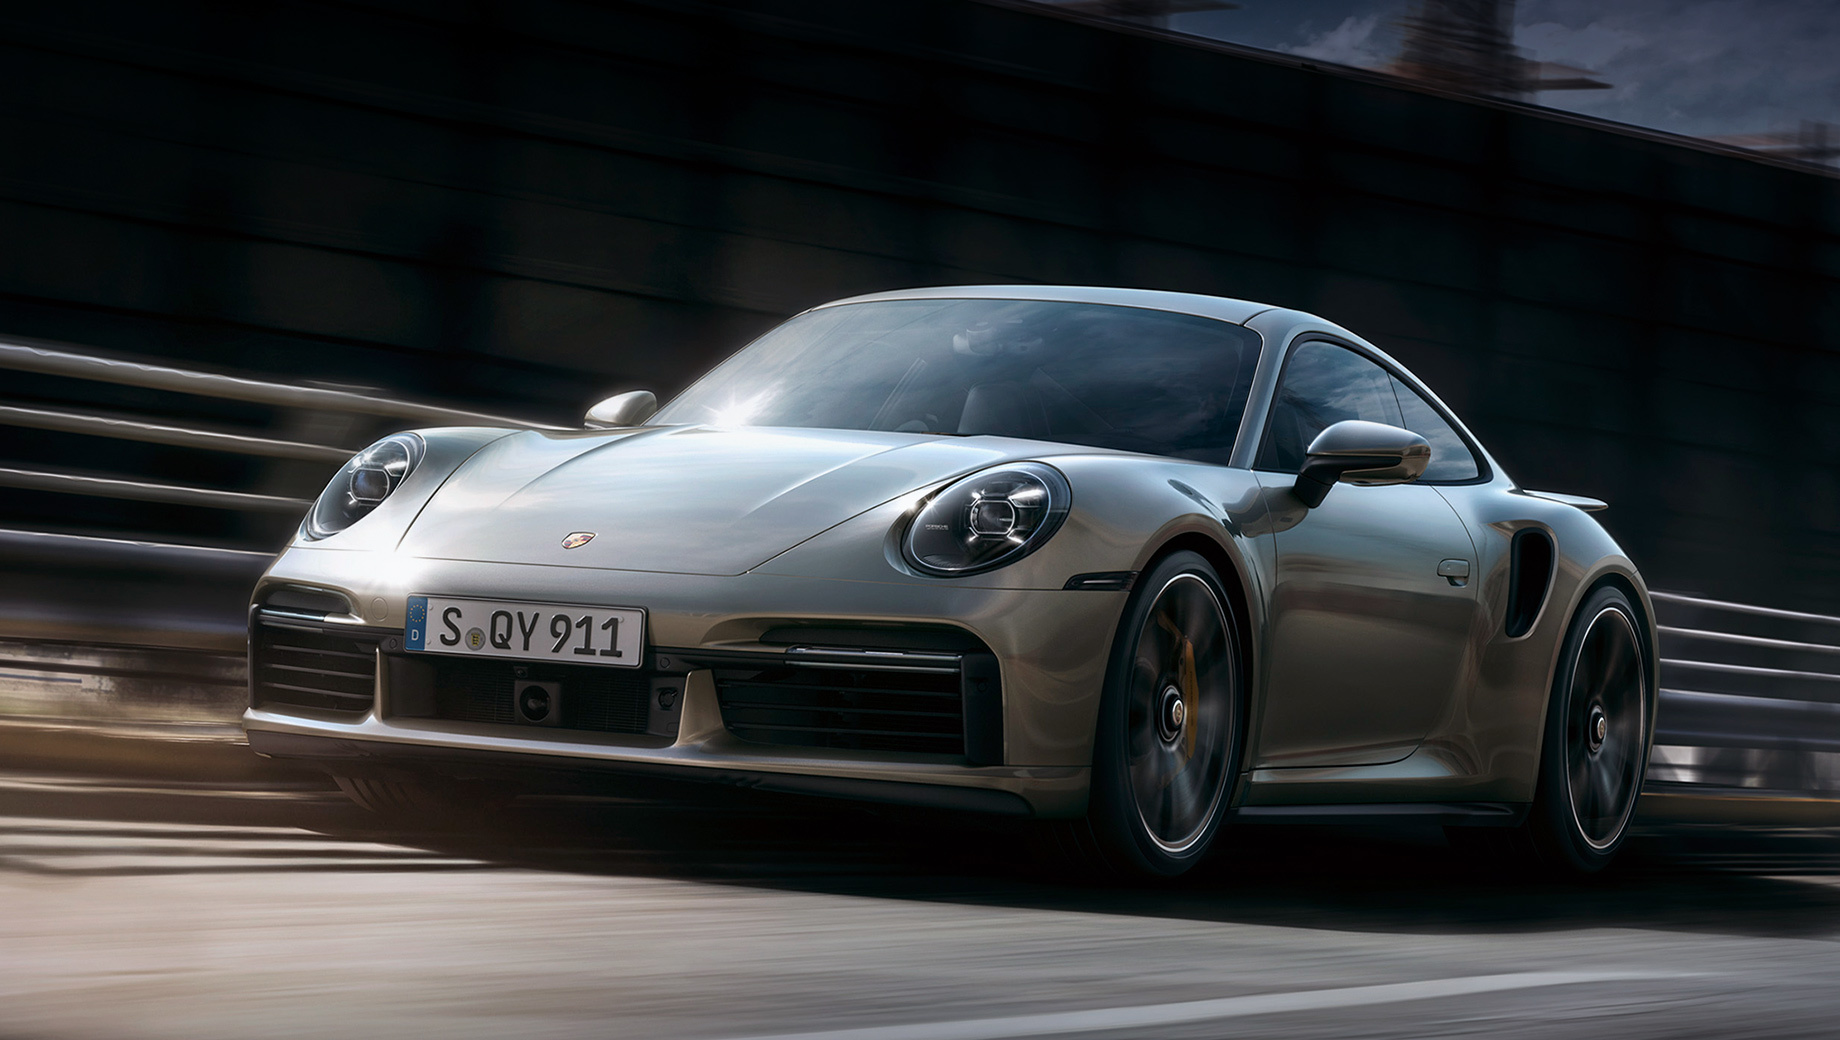 The Porsche 911 (992) Turbo S, which is shown here, debuted four months ago, while its non-S counterpart was never revealed. Today, Rosstandart – short for Russian federal agency for technical regulation – posted an official VTA with all the 992 Turbo specs listed there.